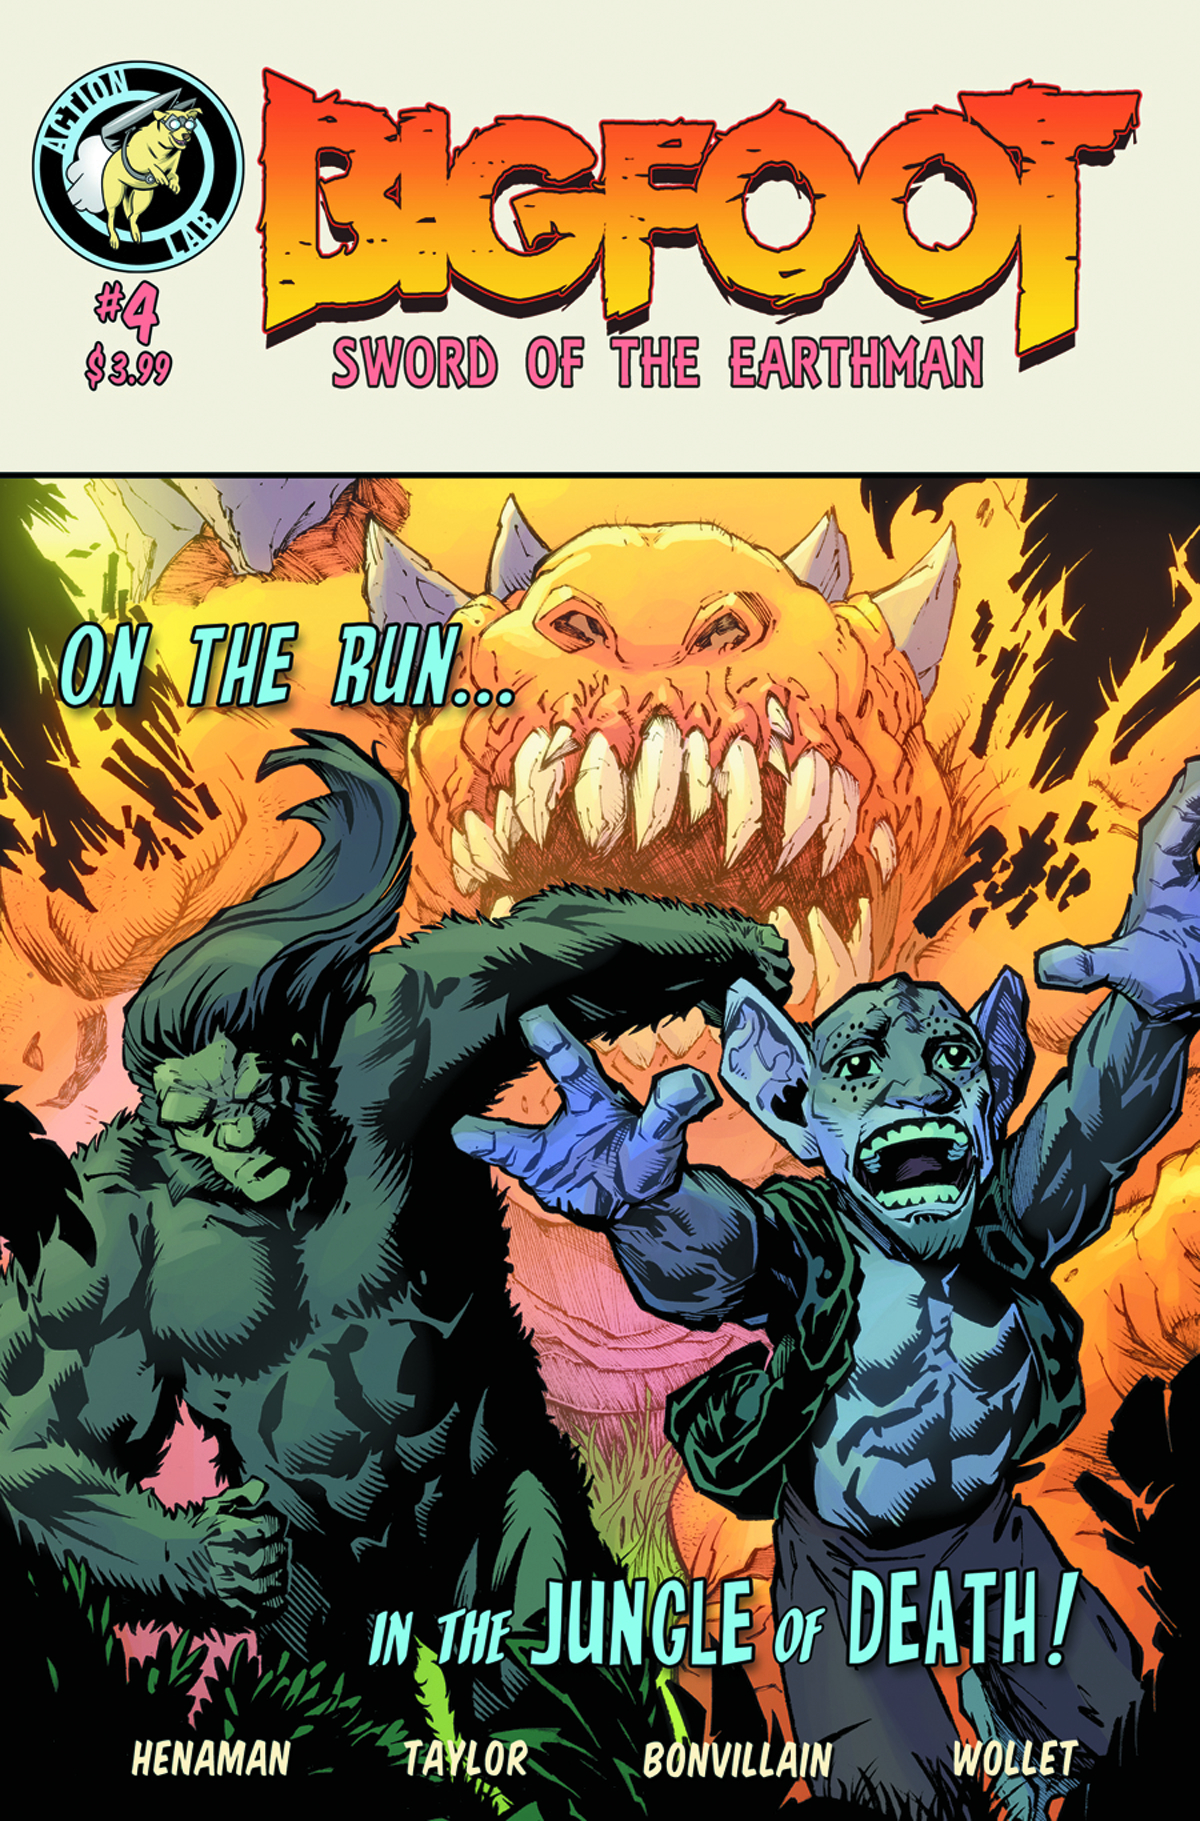 BIGFOOT SWORD OF THE EARTHMAN #4